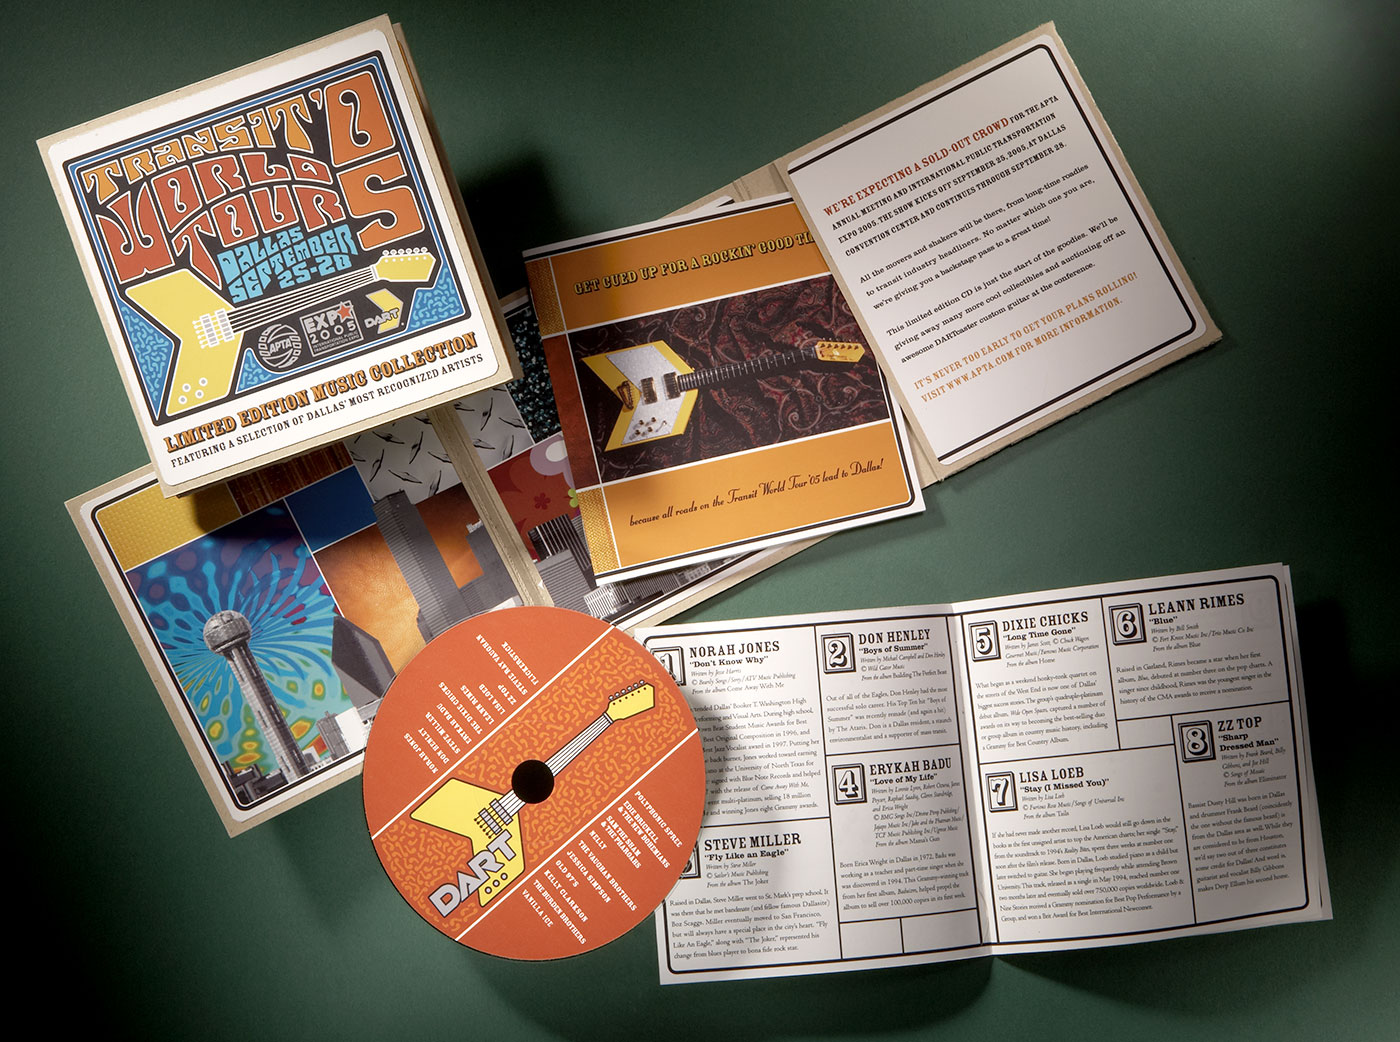 custom cd packaging with disk and insert booklet